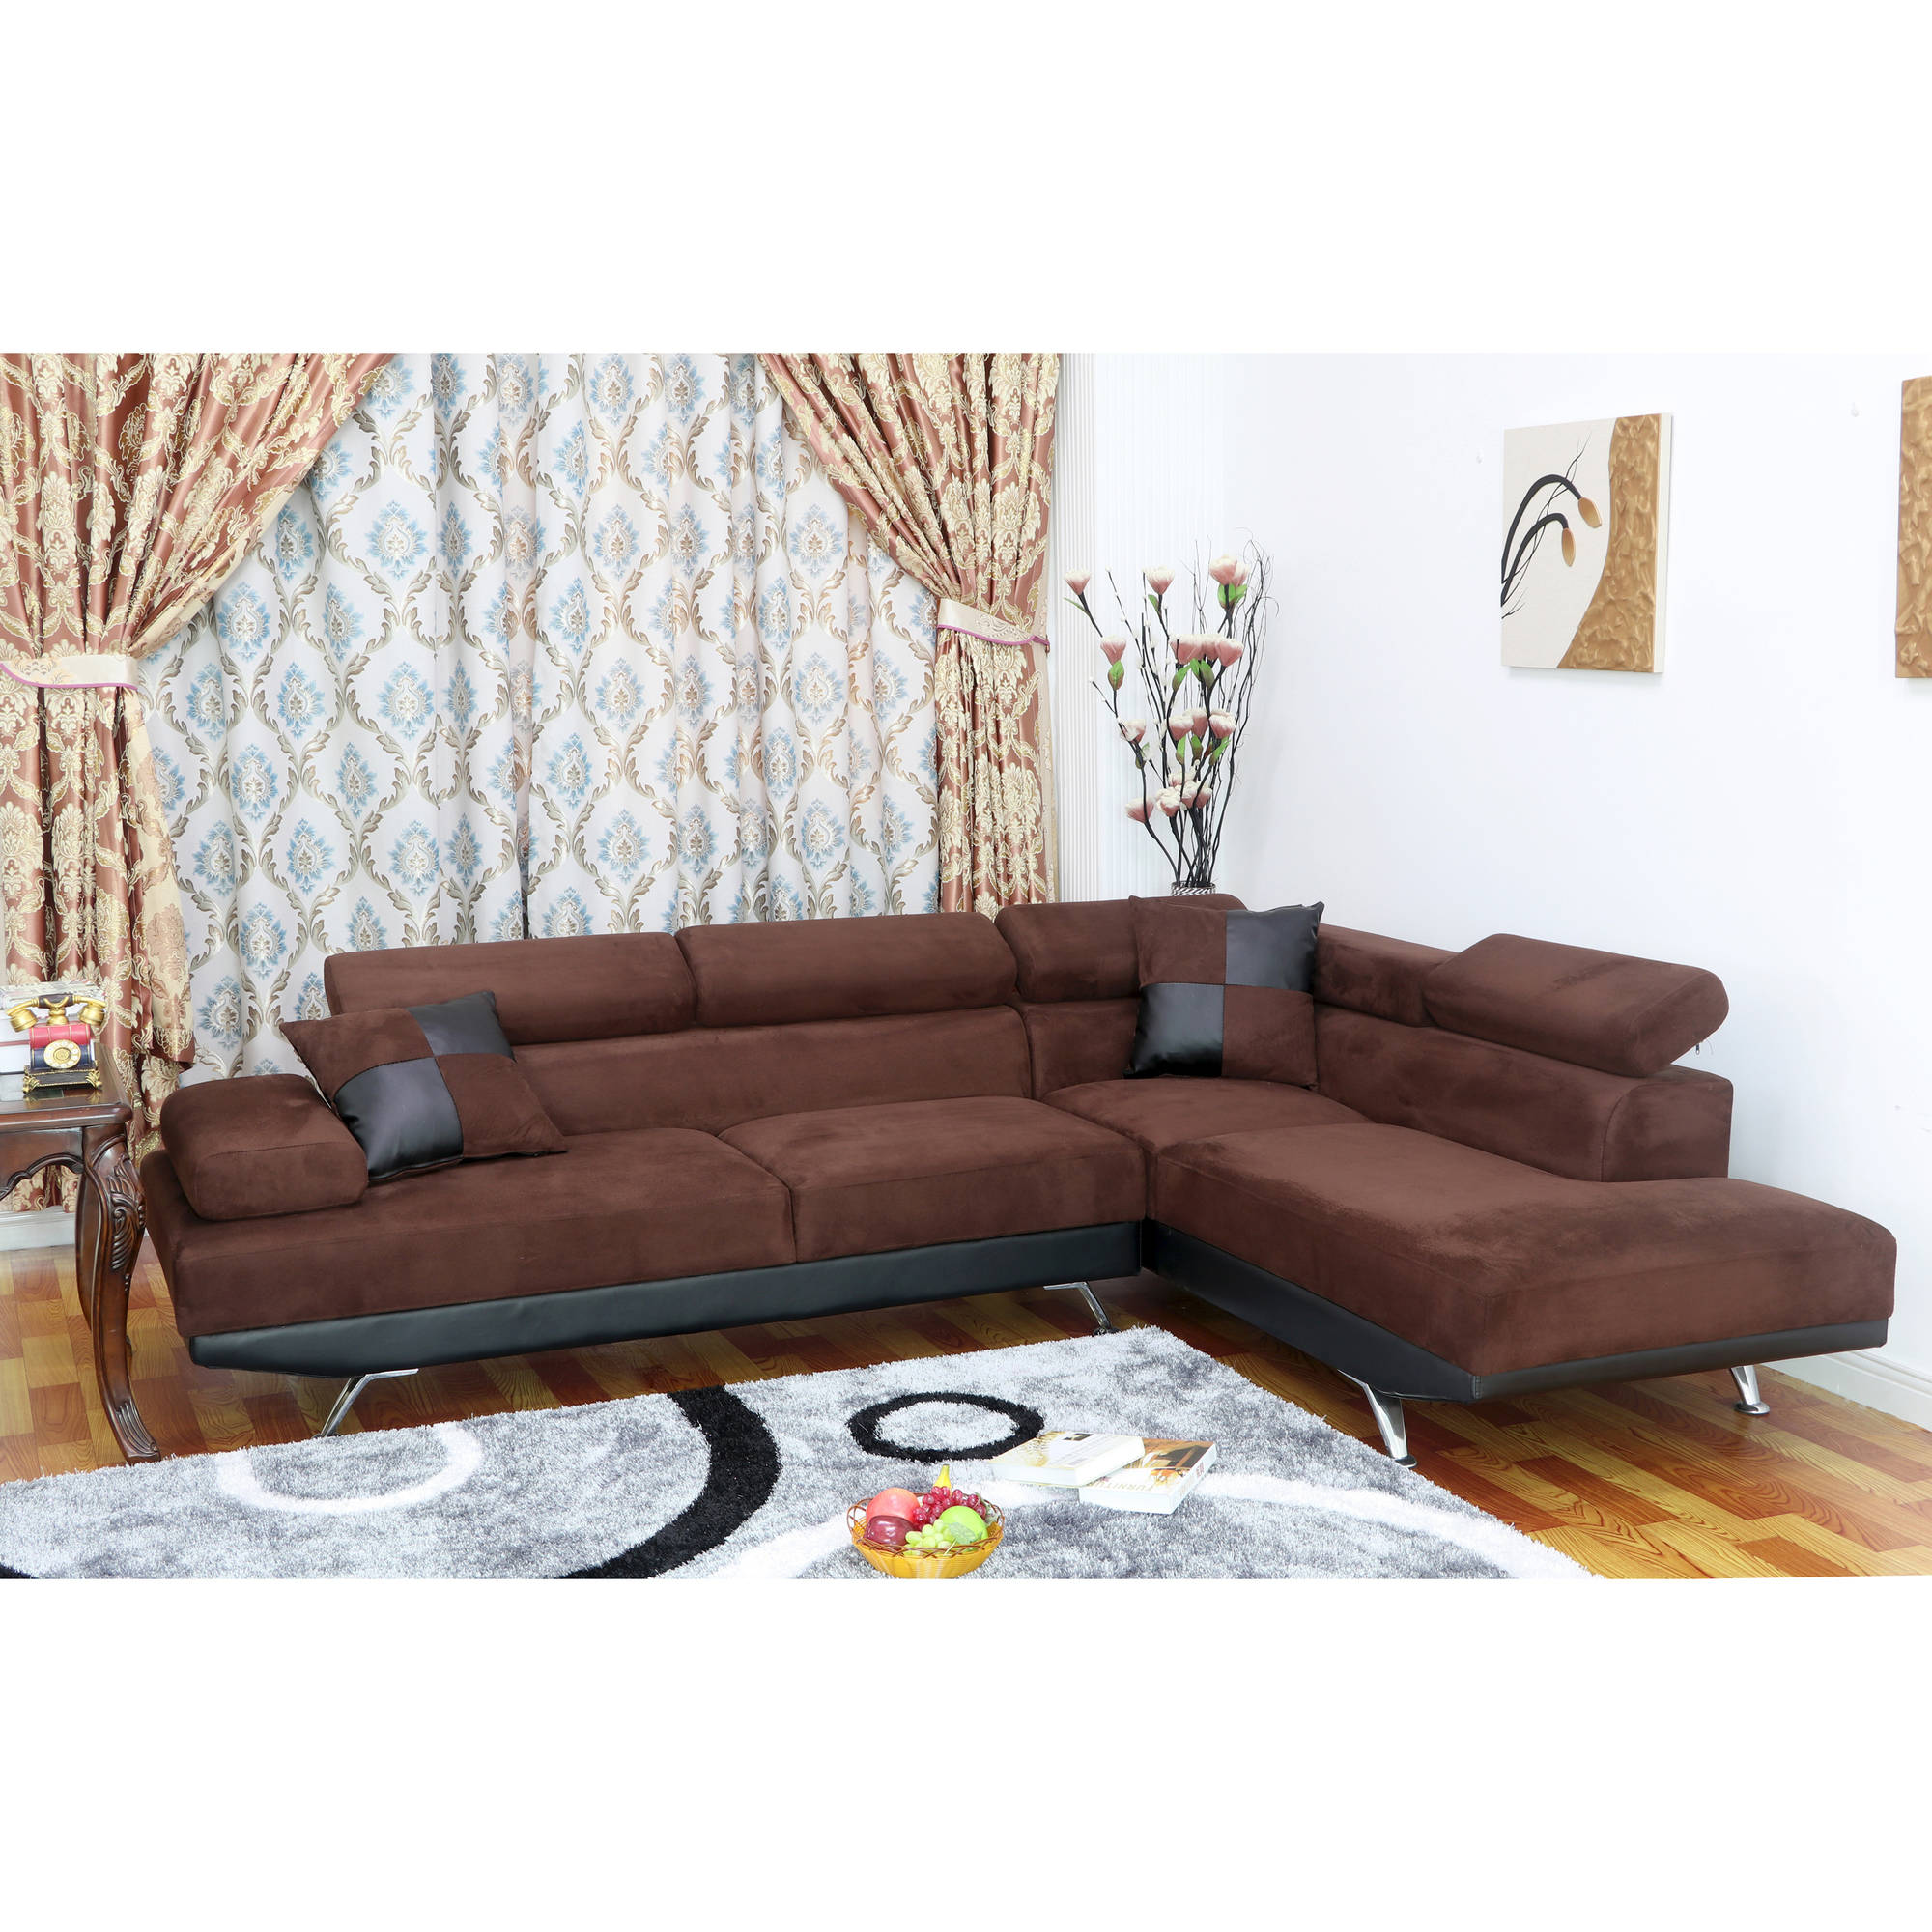 UFE Sofia 2-Piece Microfiber Modern Right Facing Chaise Sectional Sofa Set Dark Brown  sc 1 st  Walmart : dark brown sectional sofa - Sectionals, Sofas & Couches